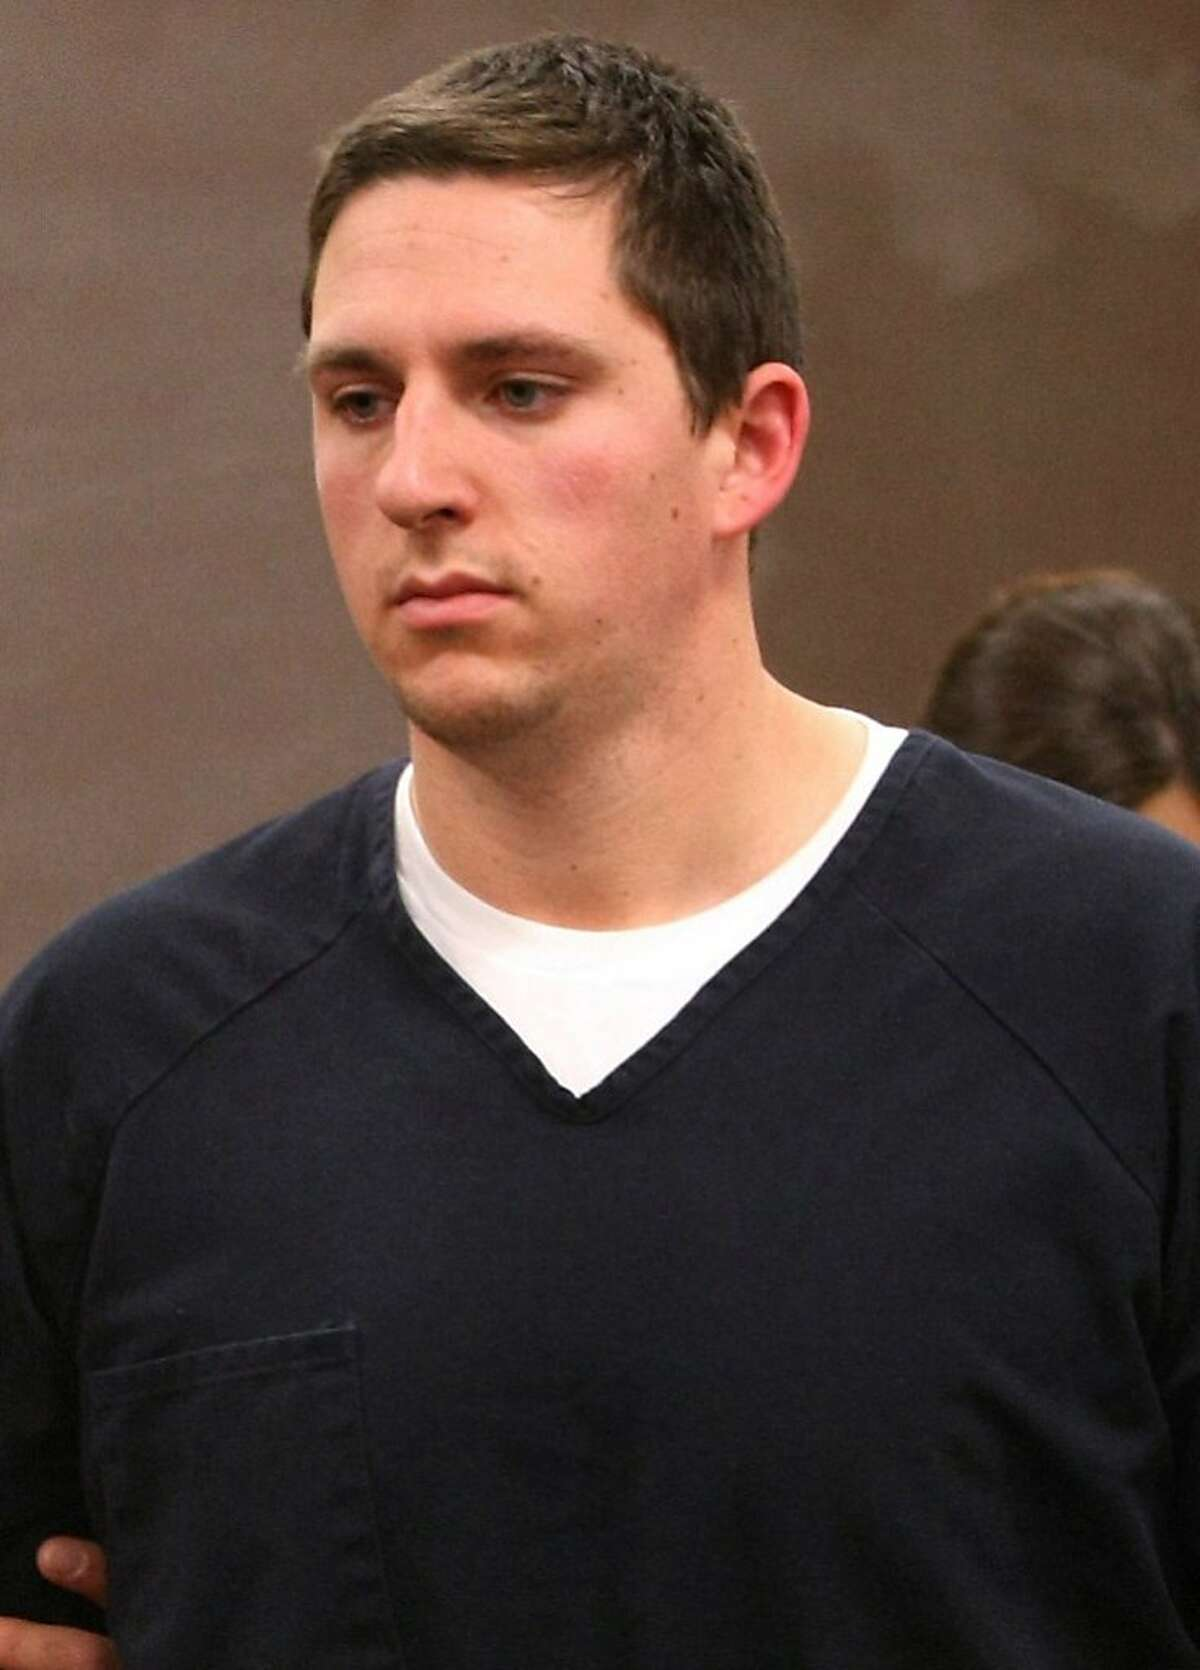 Former Bay Area Rapid Transit police officer Johannes Mehserle, appears in the East Fork Justice Court in Minden, Nev. in this photo from Jan. 14, 2009. The former San Francisco Bay area transit officer convicted in the fatal shooting of an unarmedblack man that has drawn continuing protest was released from jail early Monday,June 13, 2011 after serving one year of a two-year sentence, officials said.